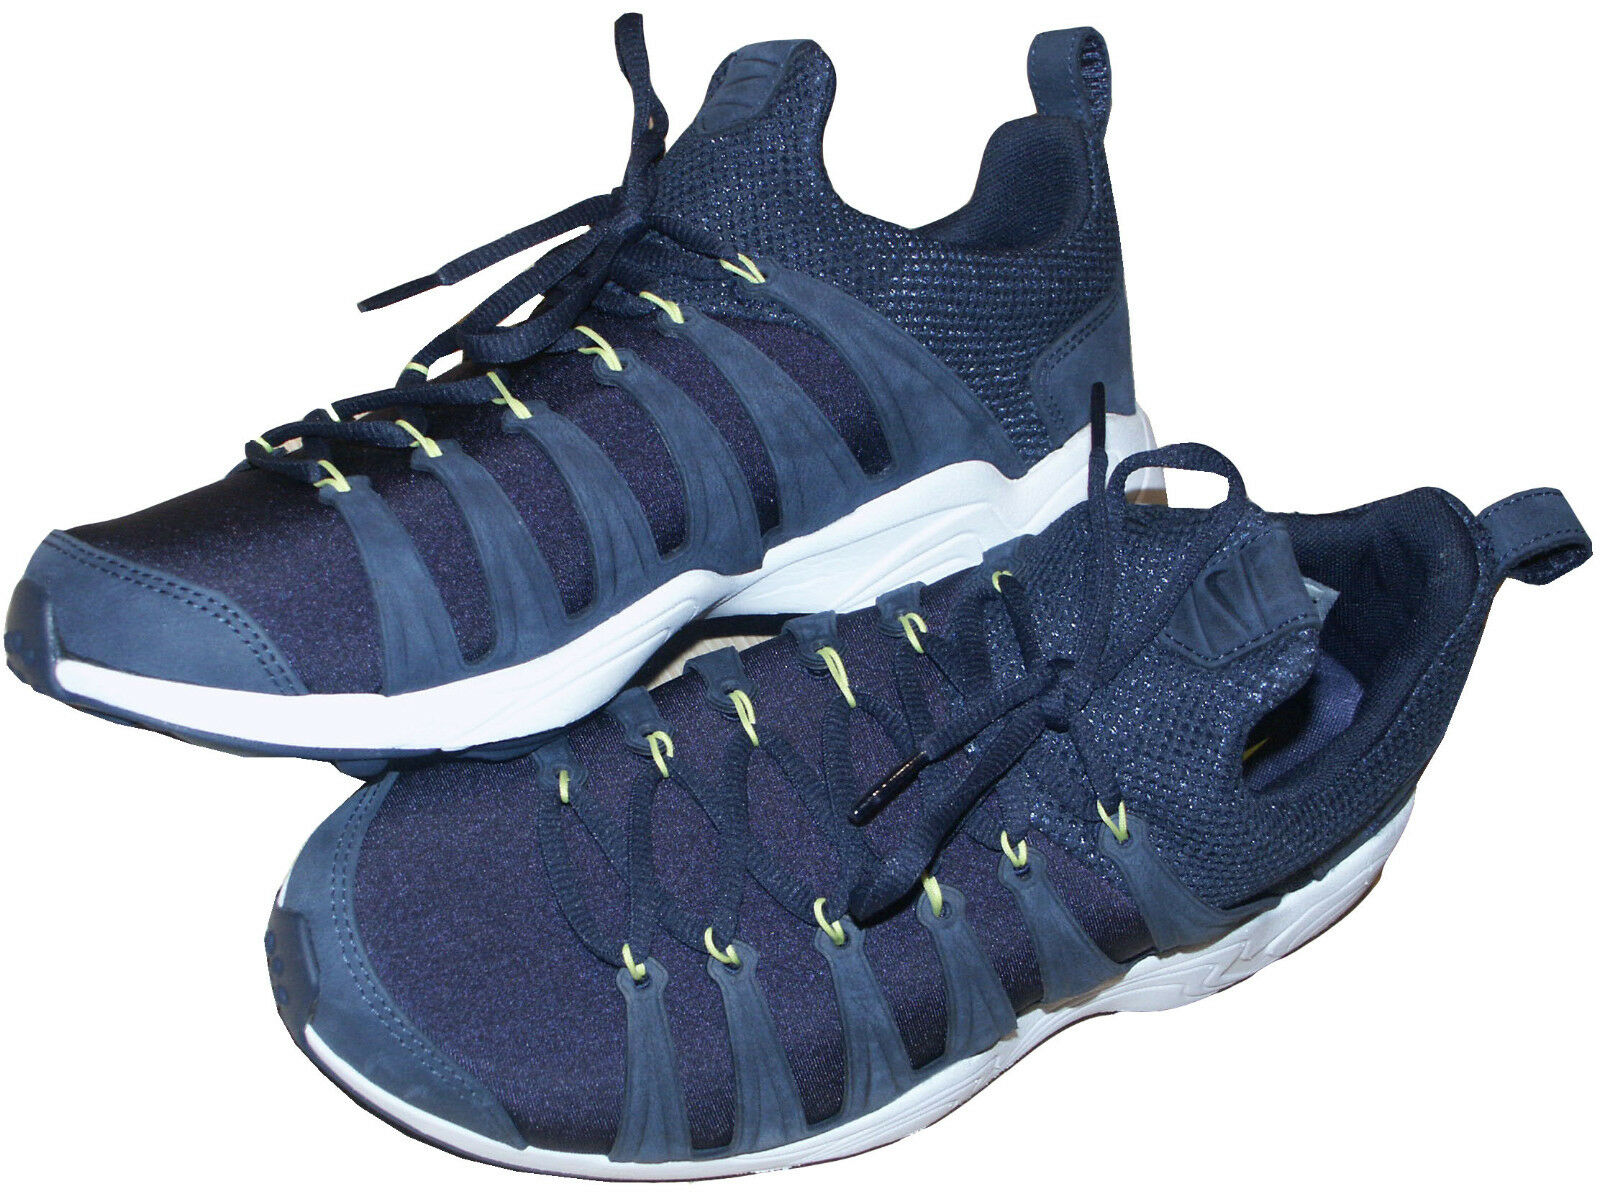 NIKE AIR ZOOM SPIRIMIC LIGHTWEIGHT NAVY TRAINERS / chaussures RARE SZ:UK8 EU42.5 US9